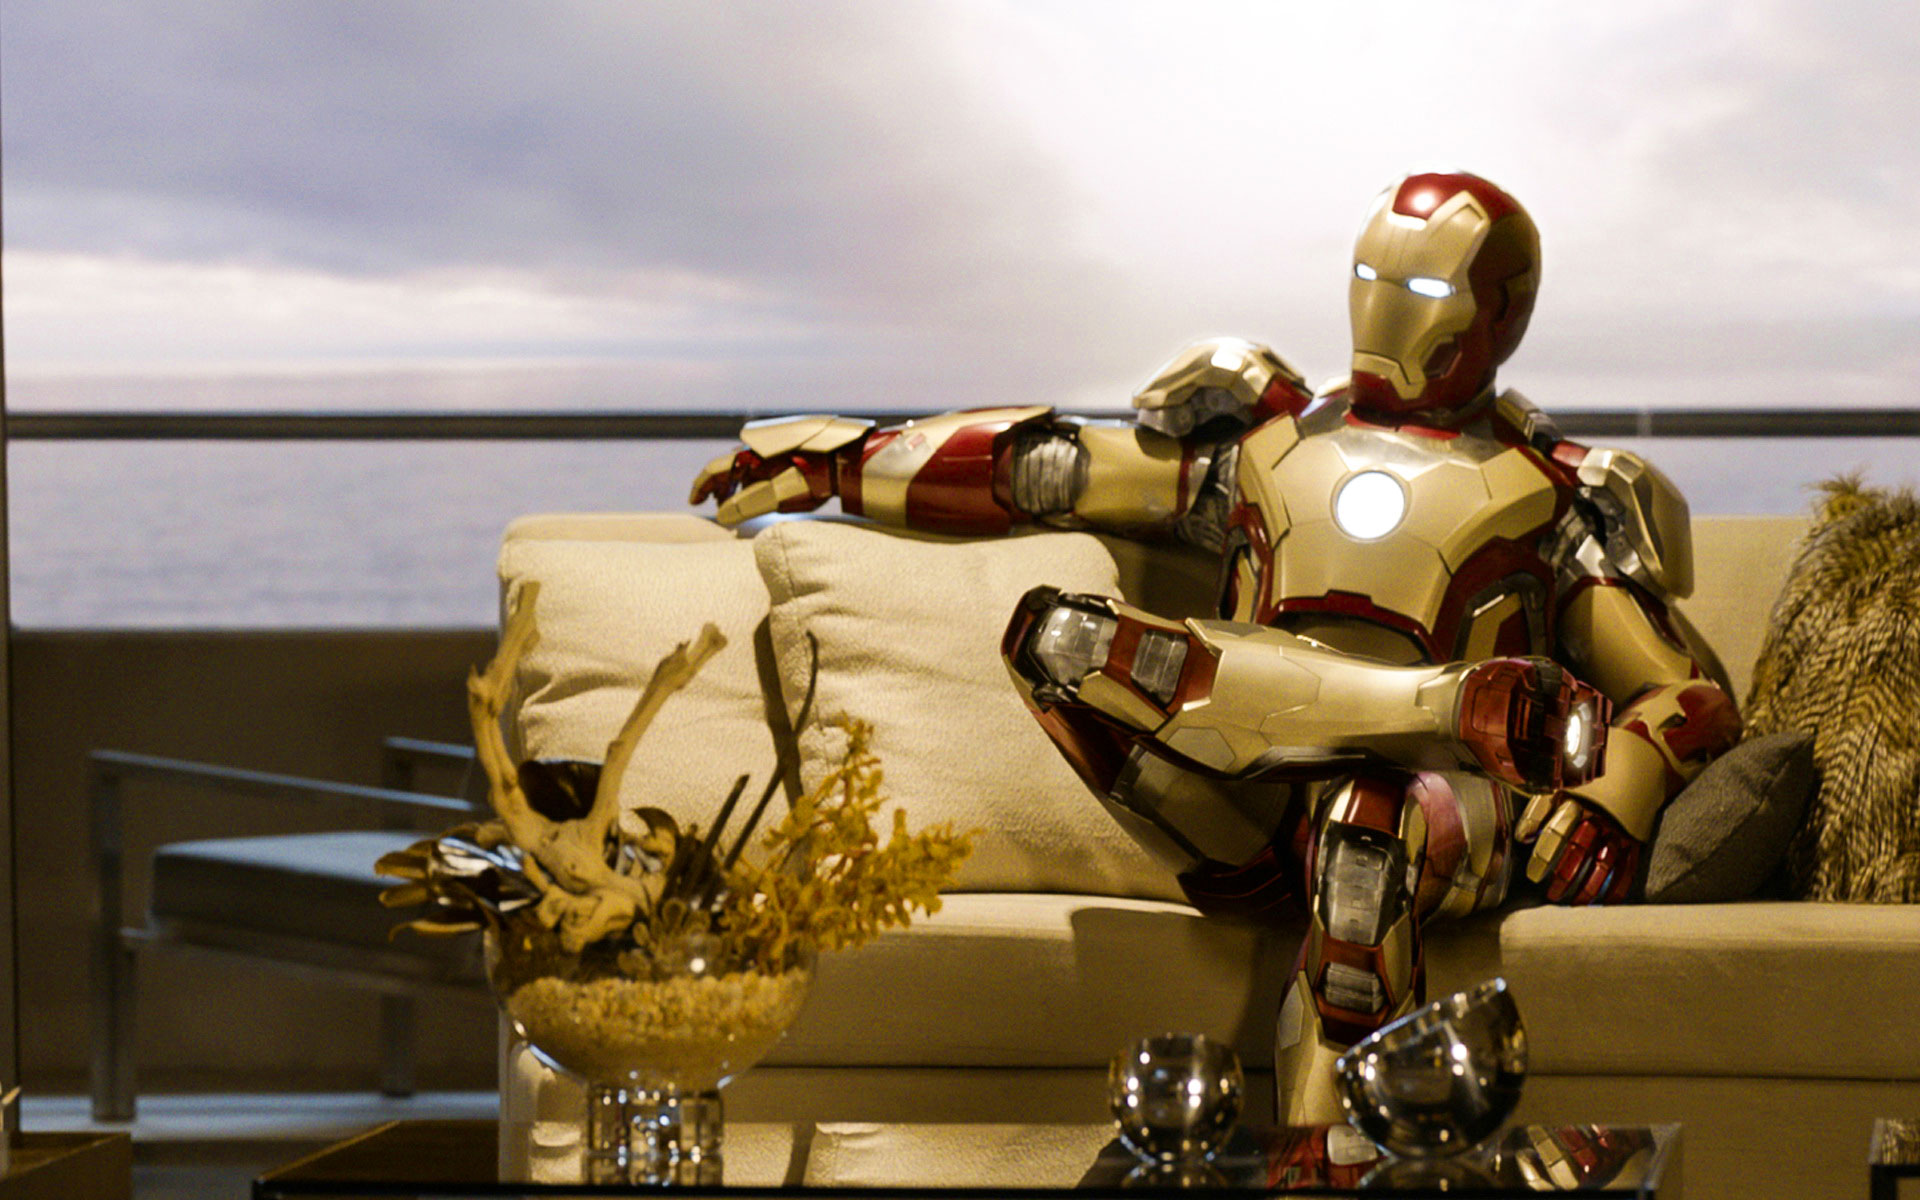 Iron Man Hd Wallpapers In Hd Space Elephant 1920x1200